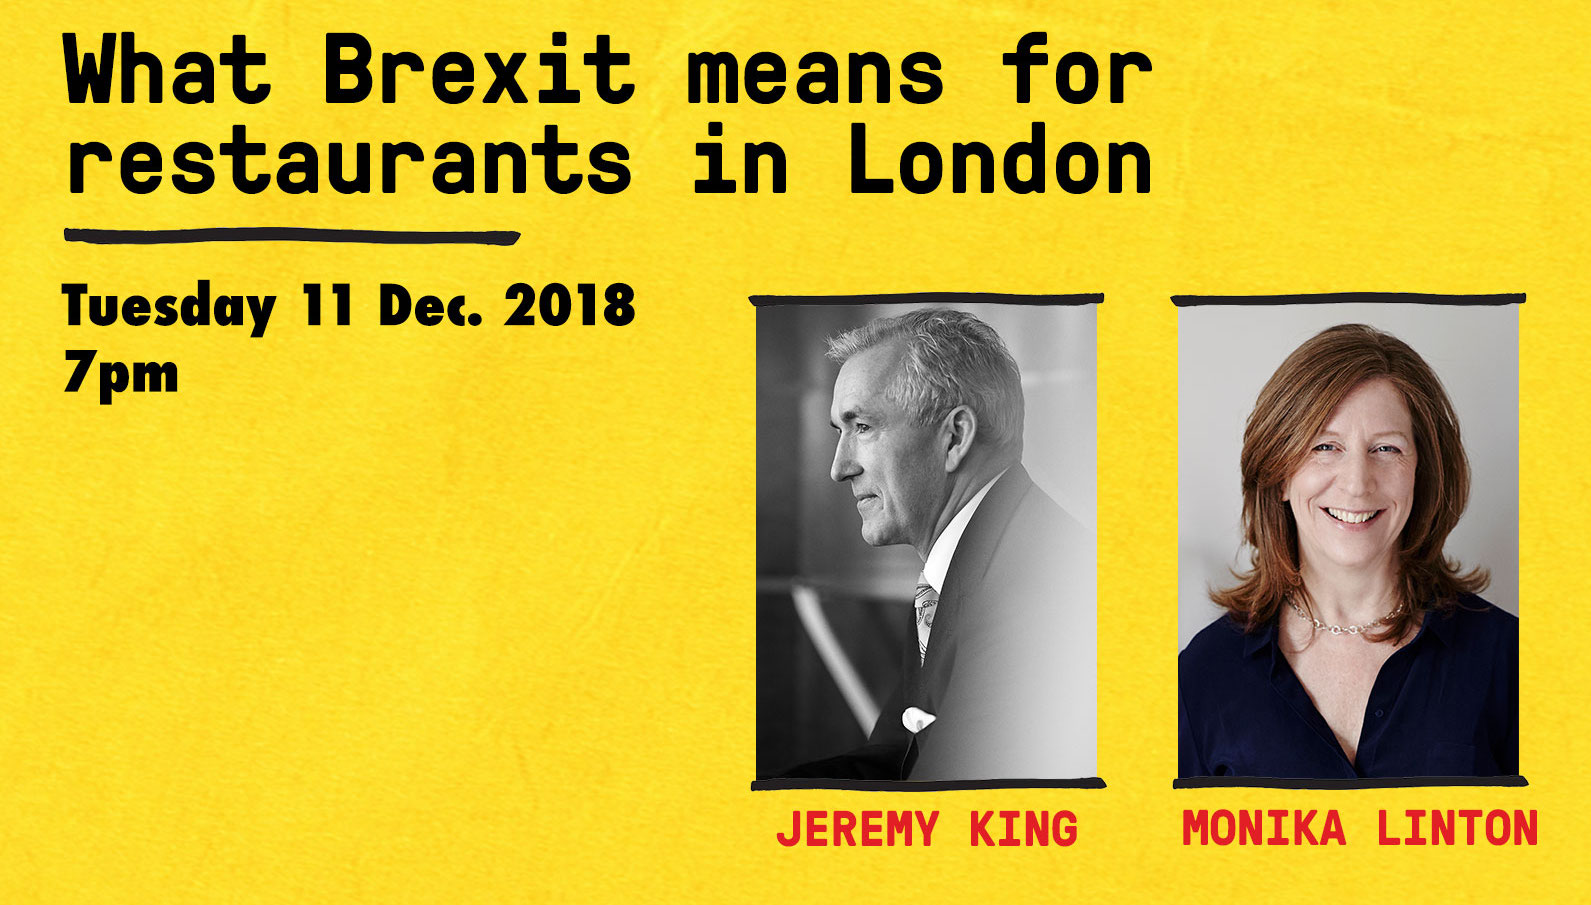 Eater London's Brexit talk for London restaurants features Jeremy King of The Wolseley and Monika Linton of Brindisa